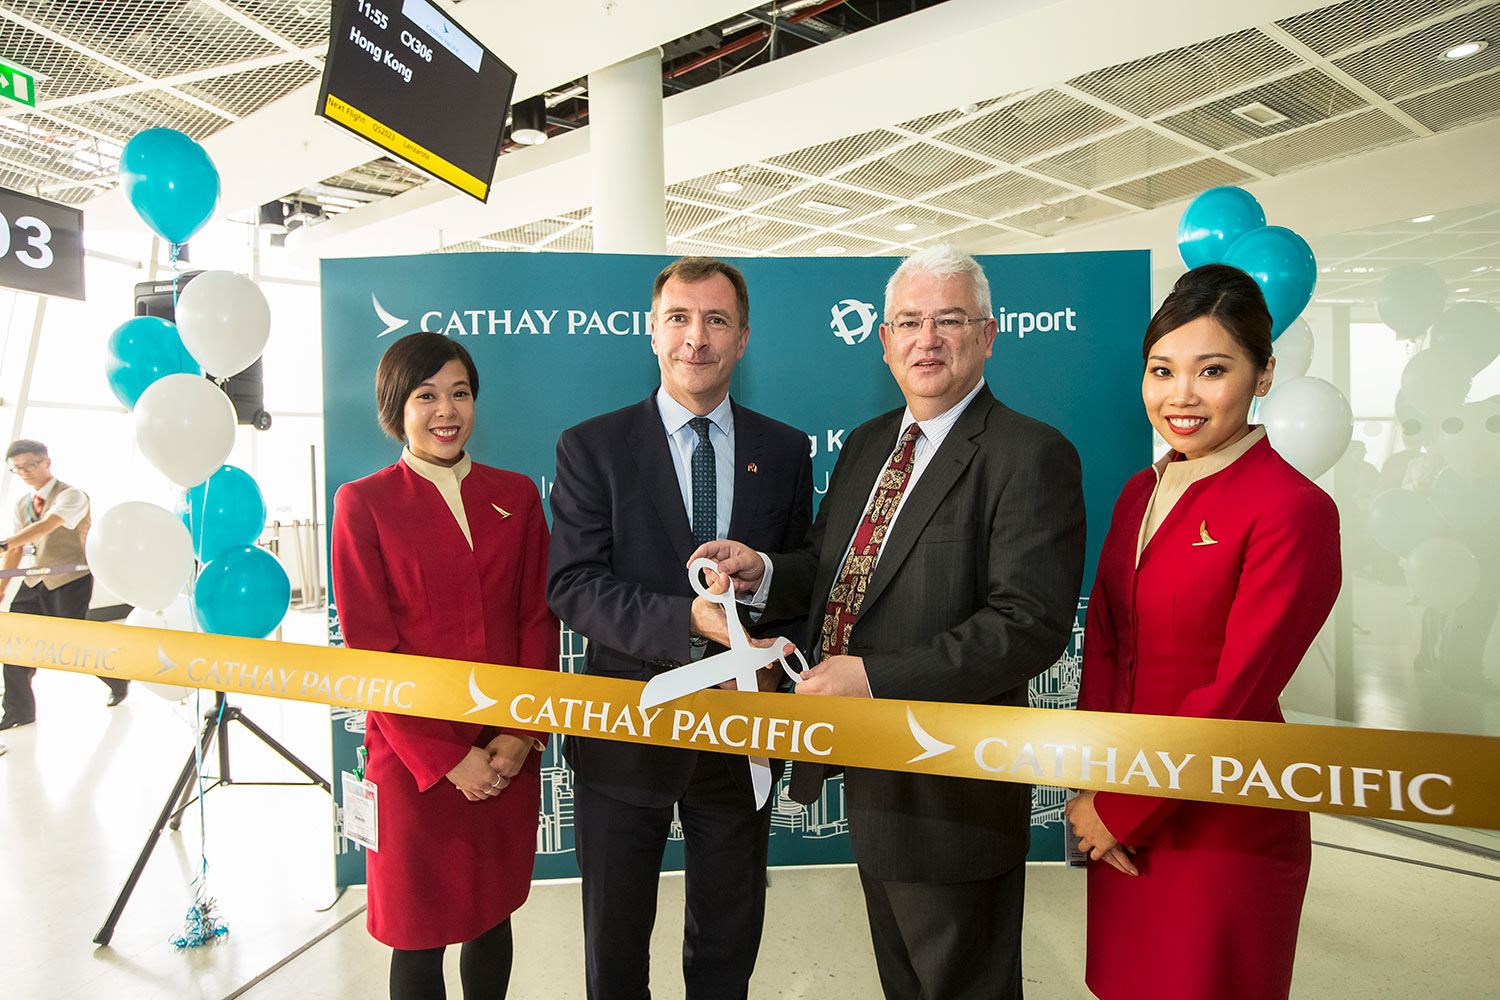 Cathay Pacific cabin crew Christine Wang and Winnie Phan with James Ginns, Regional General Manager Europe, Cathay Pacific, and Vincent Harrison, Managing Director, Dublin Airport.